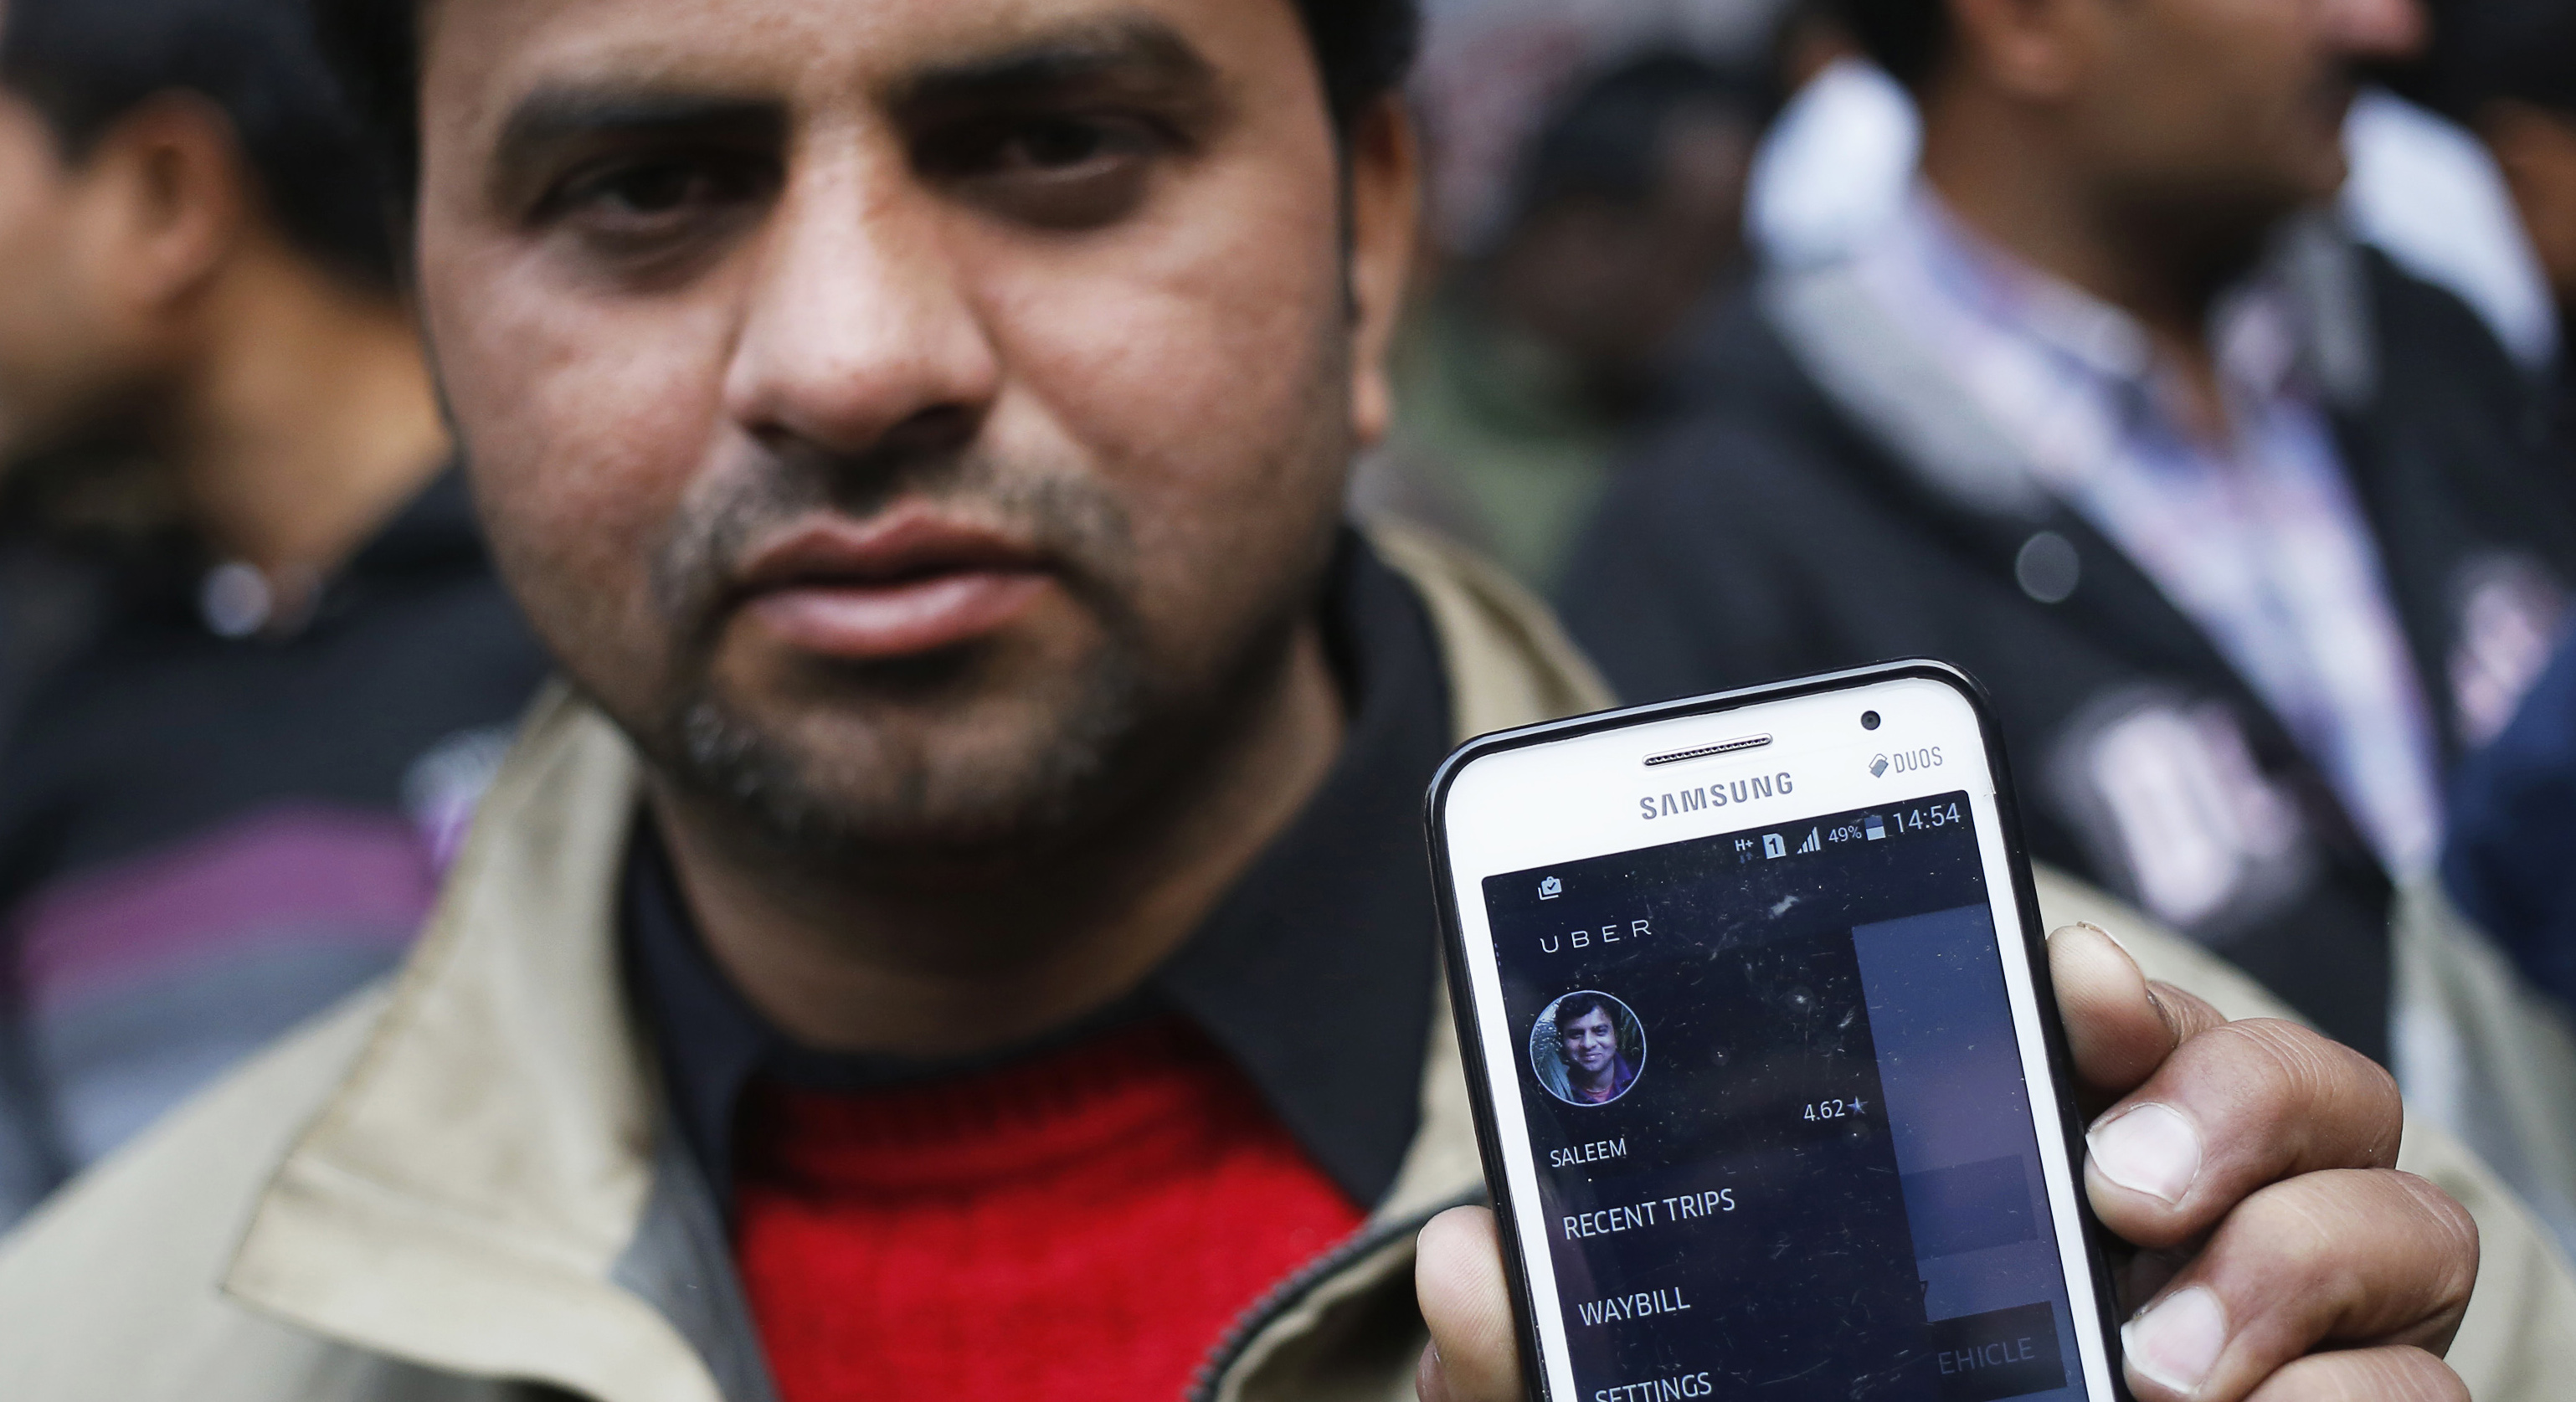 An Uber taxi driver shows an application software in his mobile phone used to track the taxi's location, during a protest against the ban on online taxi services, in New Delhi December 12, 2014. A ban on online taxi services in India, following the arrest in New Delhi of an Uber driver accused of rape, has brought uncertainty to the millions of dollars of international investment pumped into Uber's Indian rivals Ola and TaxiForSure.